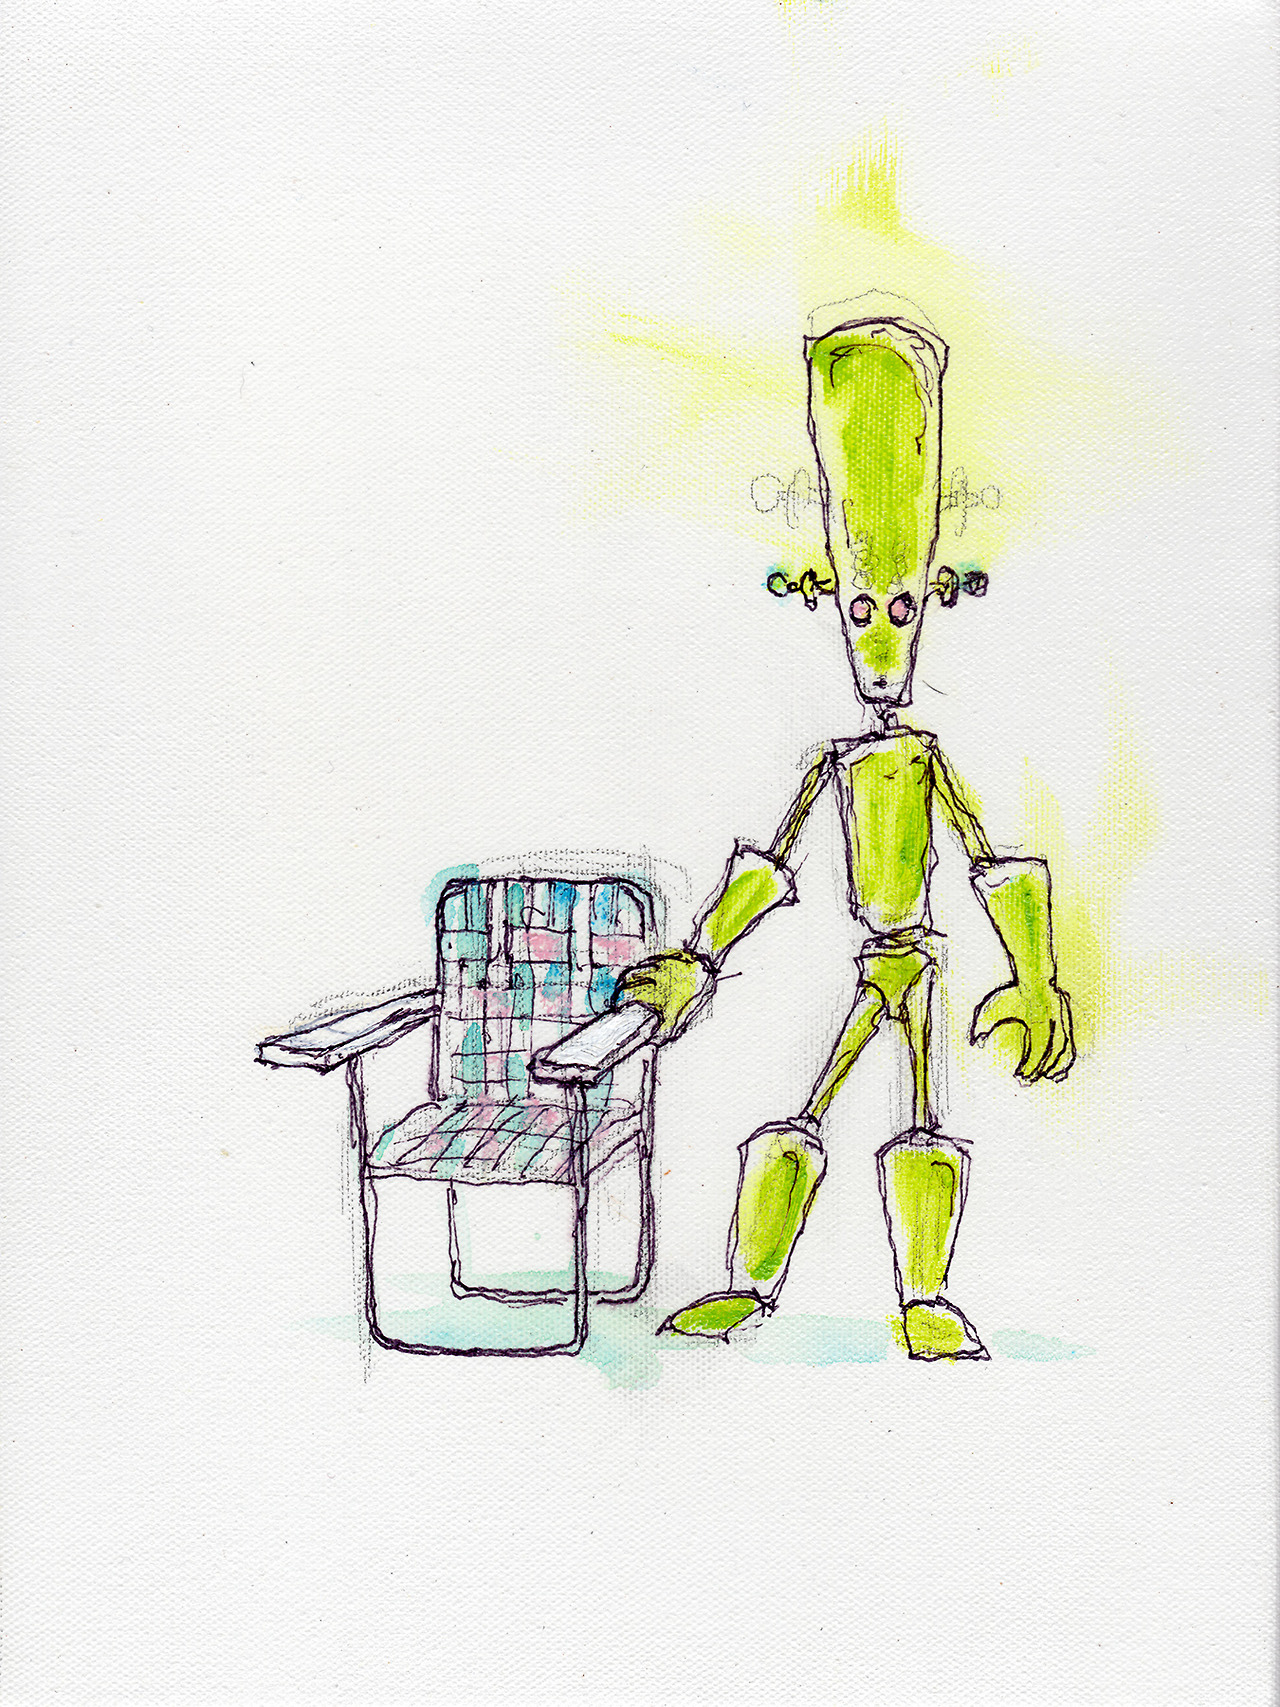 "3/19/13 -  Green is a Cowboy, On a Steel Horse He Rides .     Taste the rainbow.     9"" x 12""     Acrylic paint, sharpie, pencil, polyurethane on canvas.     Available to purchase here:      http://taylorwinder.bigcartel.com      Prints available here:      http://society6.com/taylorwinder"